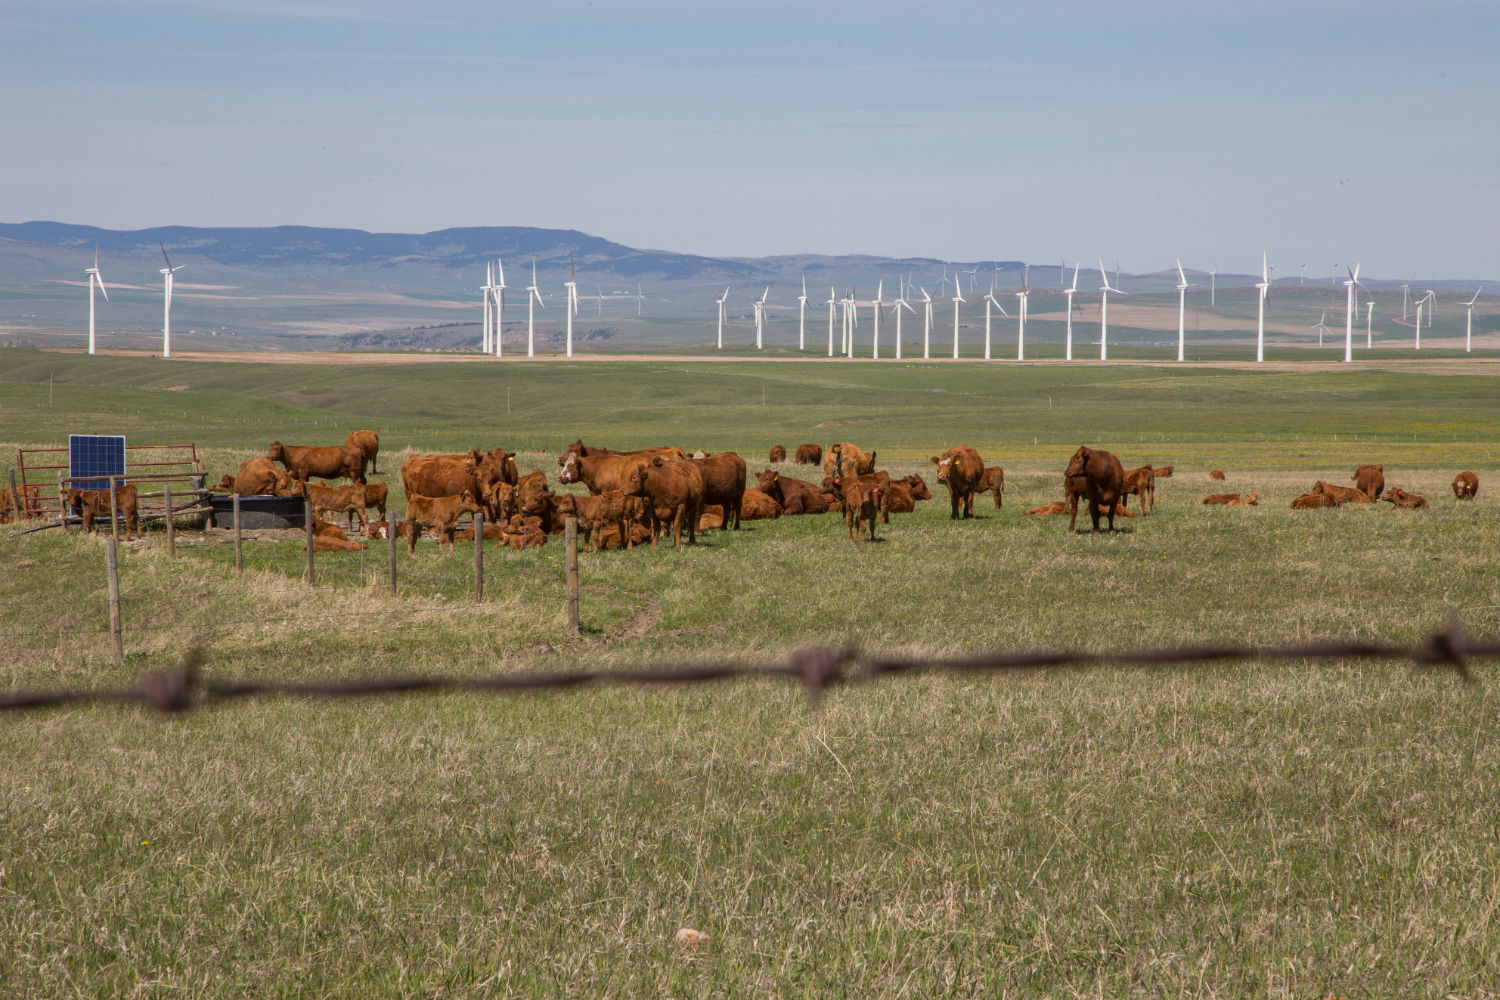 Cattle graze on a ranch near Pincher Creek, with a bank of wind turbines in the distance. (Robson Fletcher/CBC)